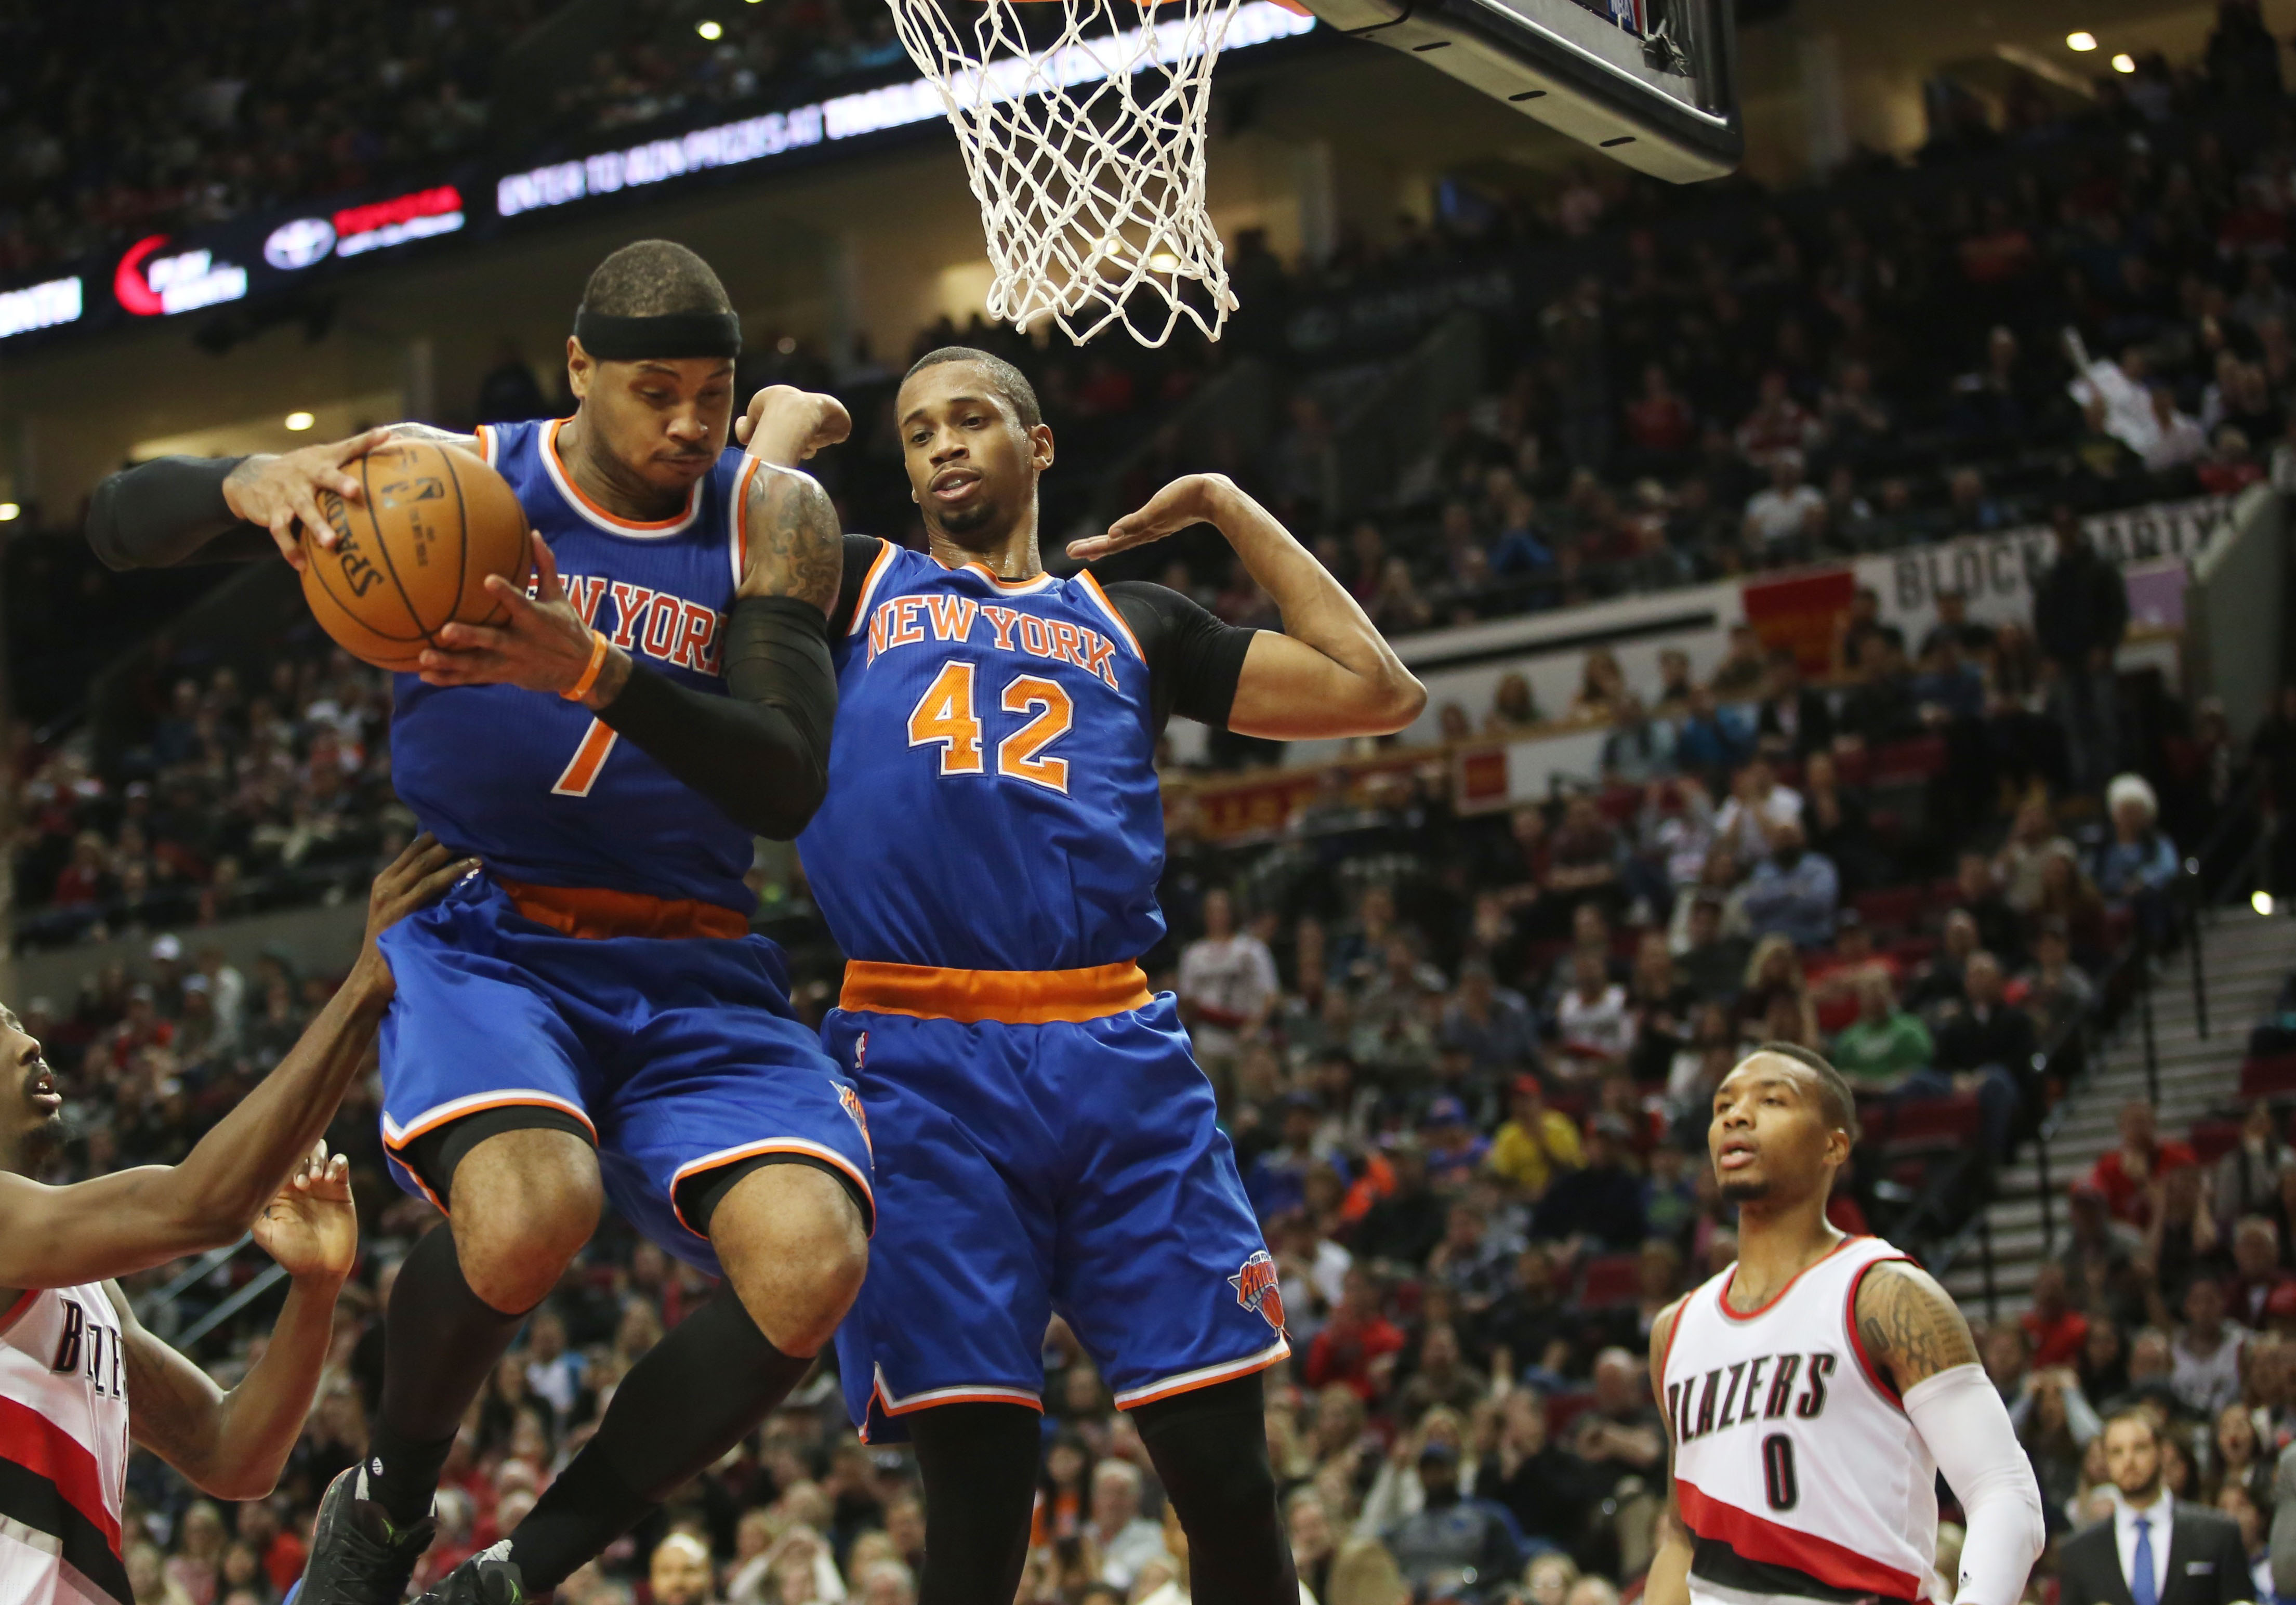 8994127-nba-new-york-knicks-at-portland-trail-blazers